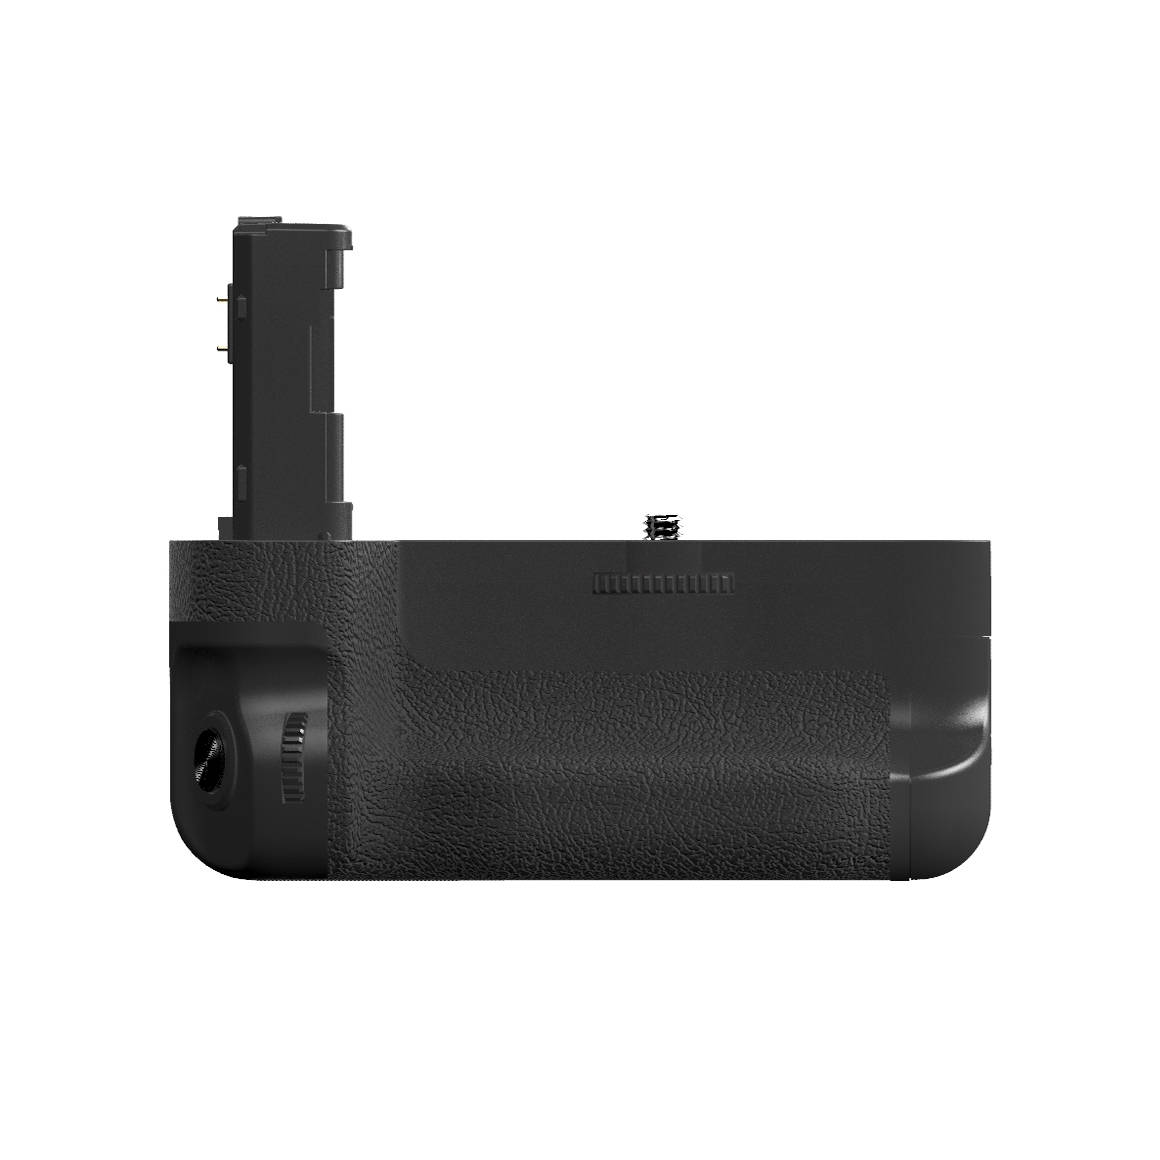 Meike MK-A7II Battery Grip for Sony A7 II A7R II as Sony VG-C2EM camera kate spade new york lillian court neva clutch